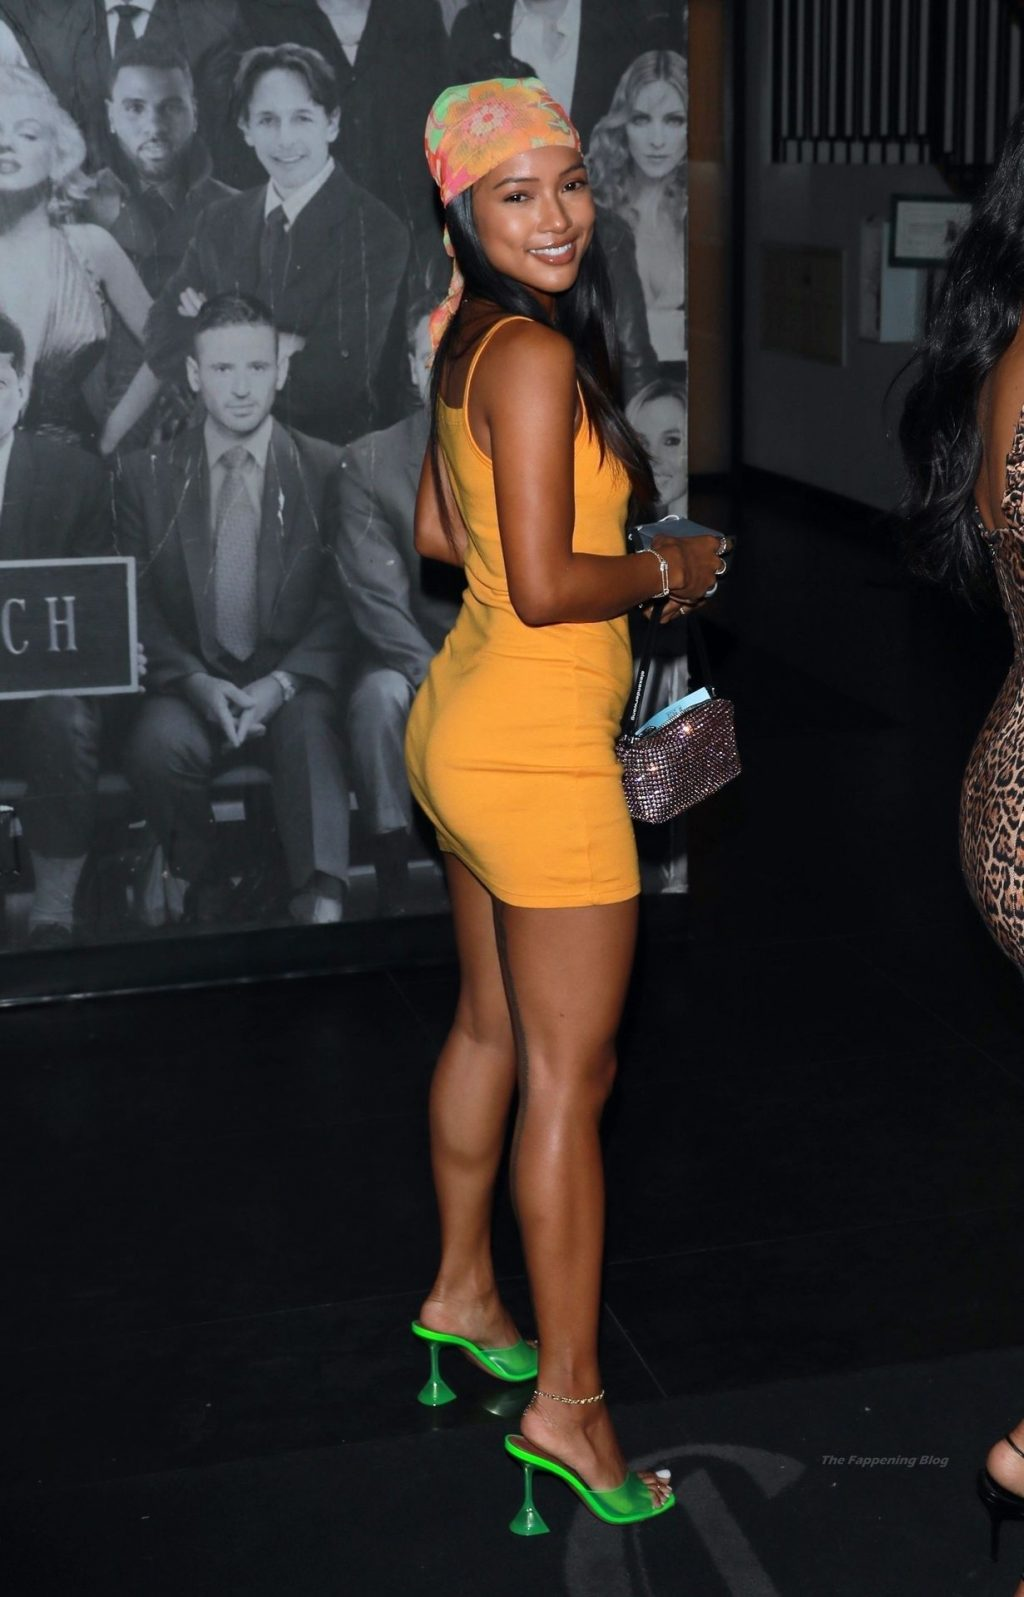 Karrueche Tran Stuns in An Orange Sherbet Dress While Out in Hollywood (41 Photos)